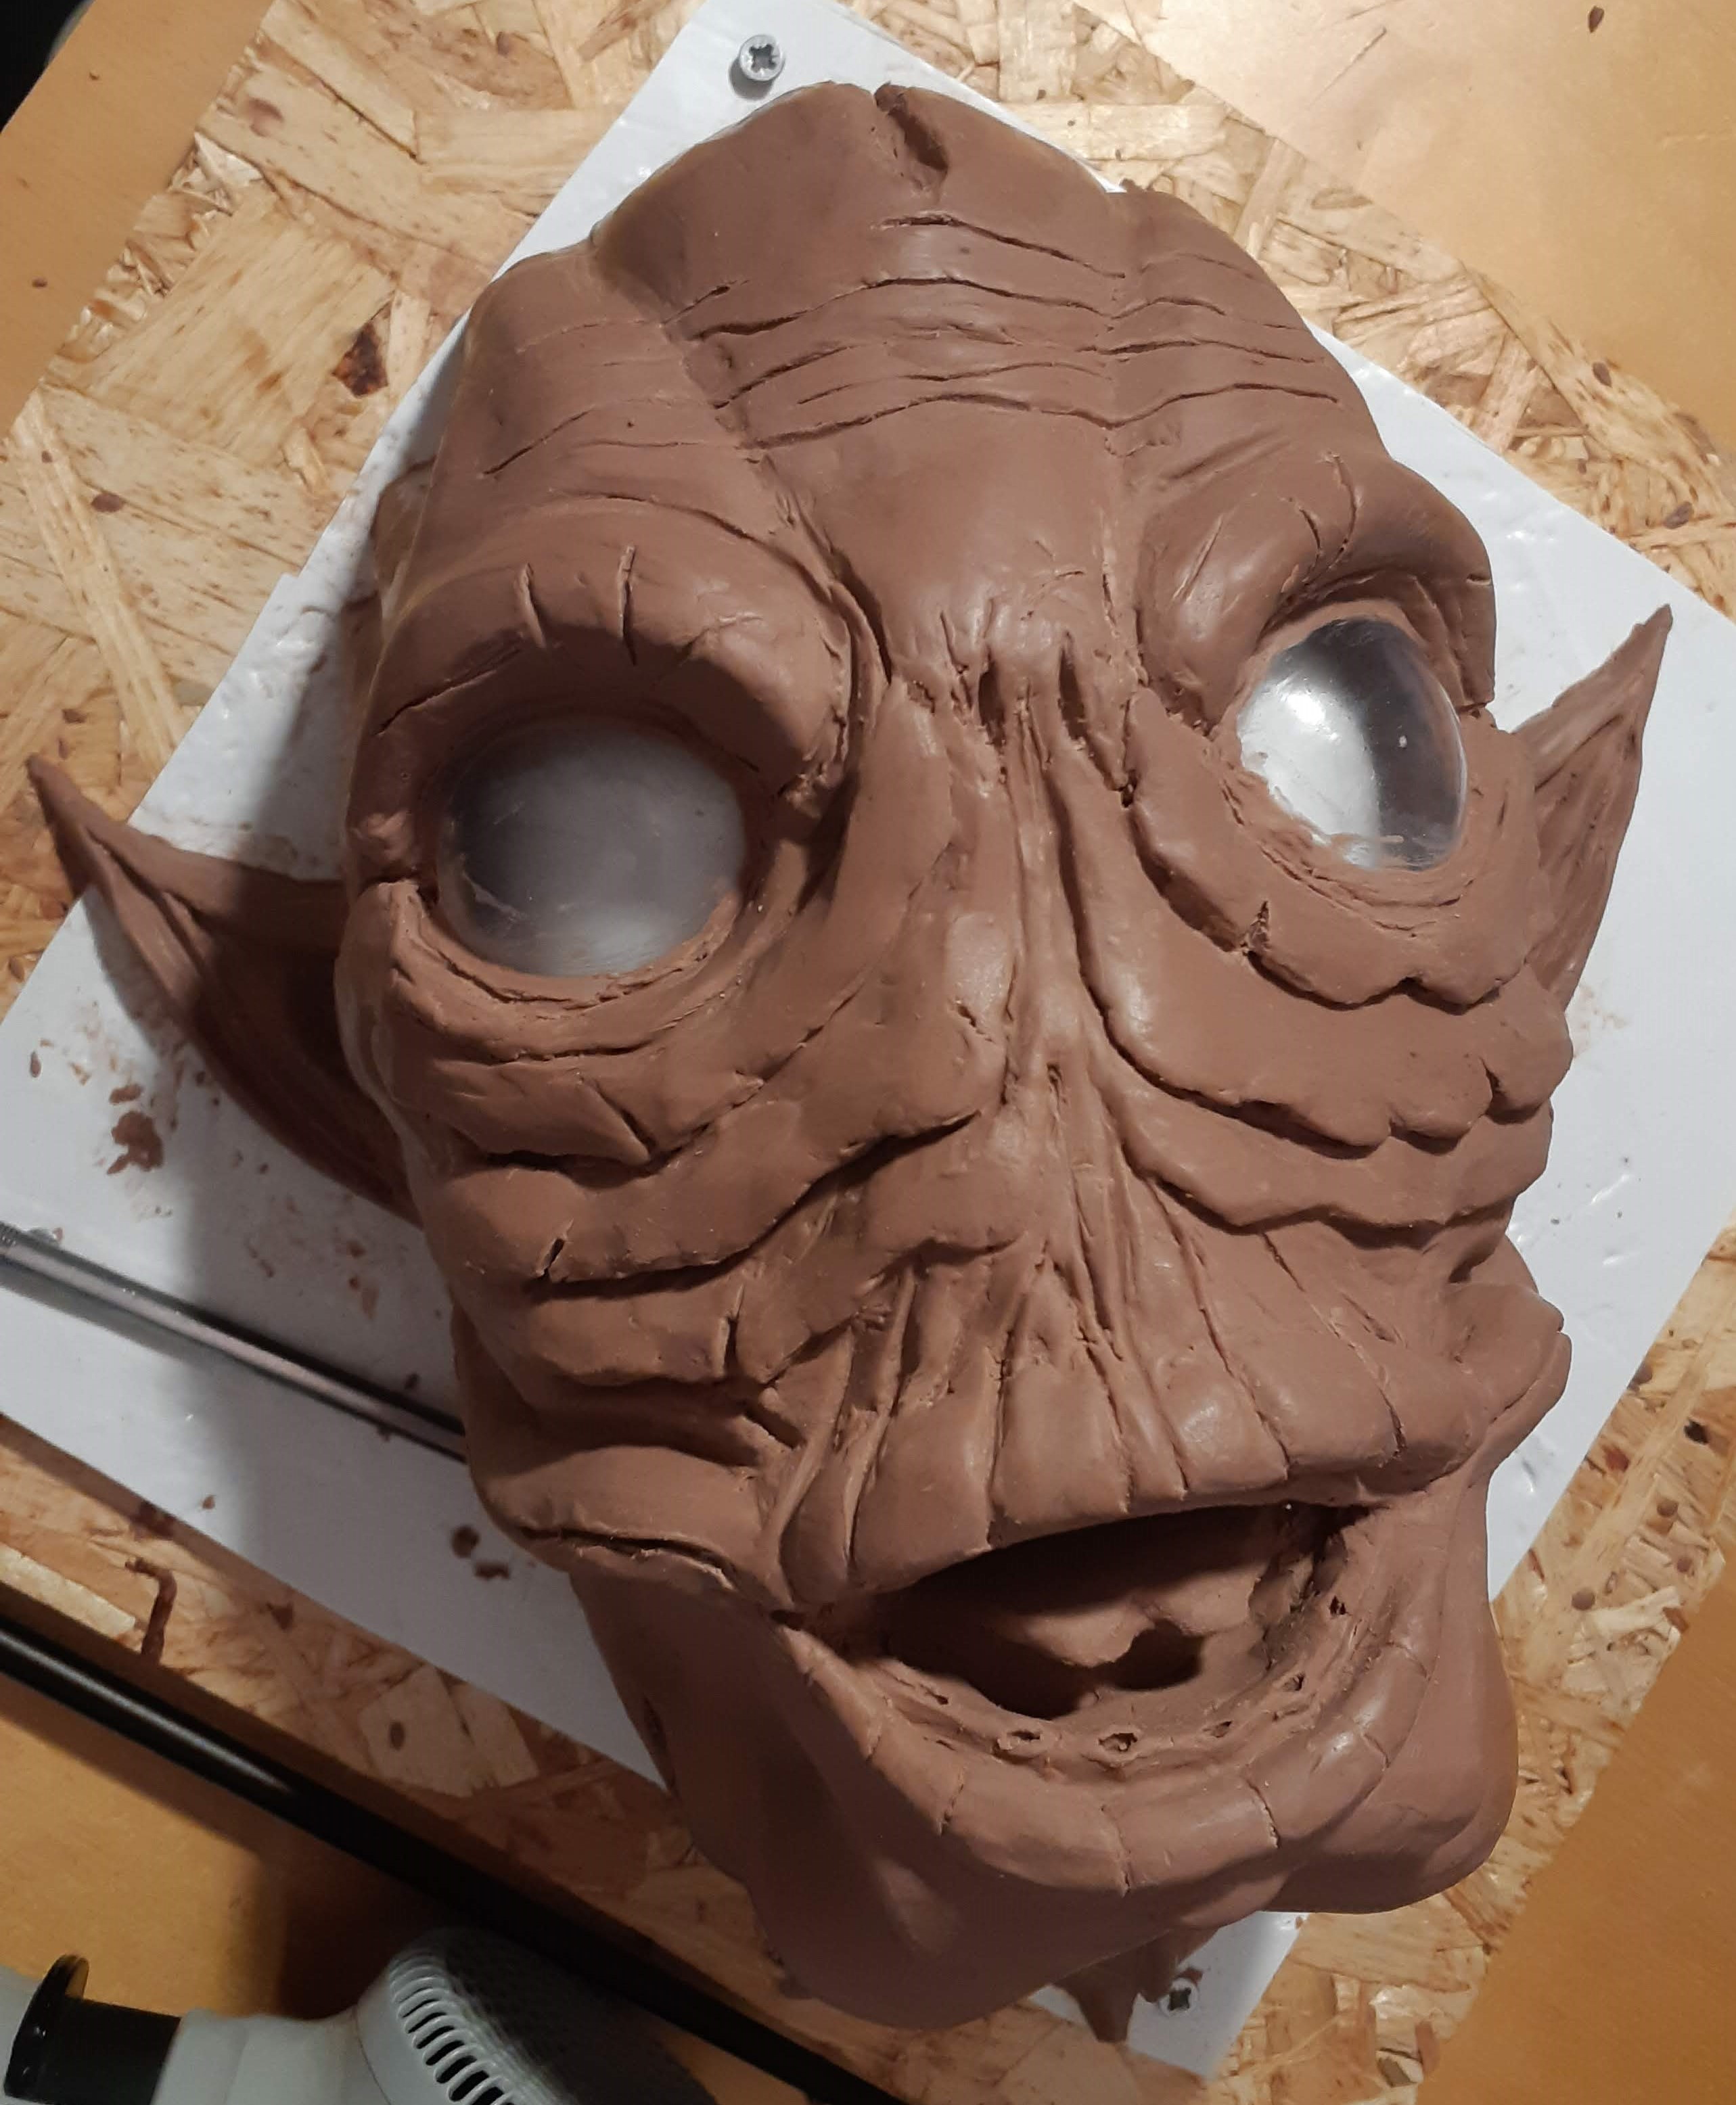 Monster Clay sculpt with vaccuformed eyes